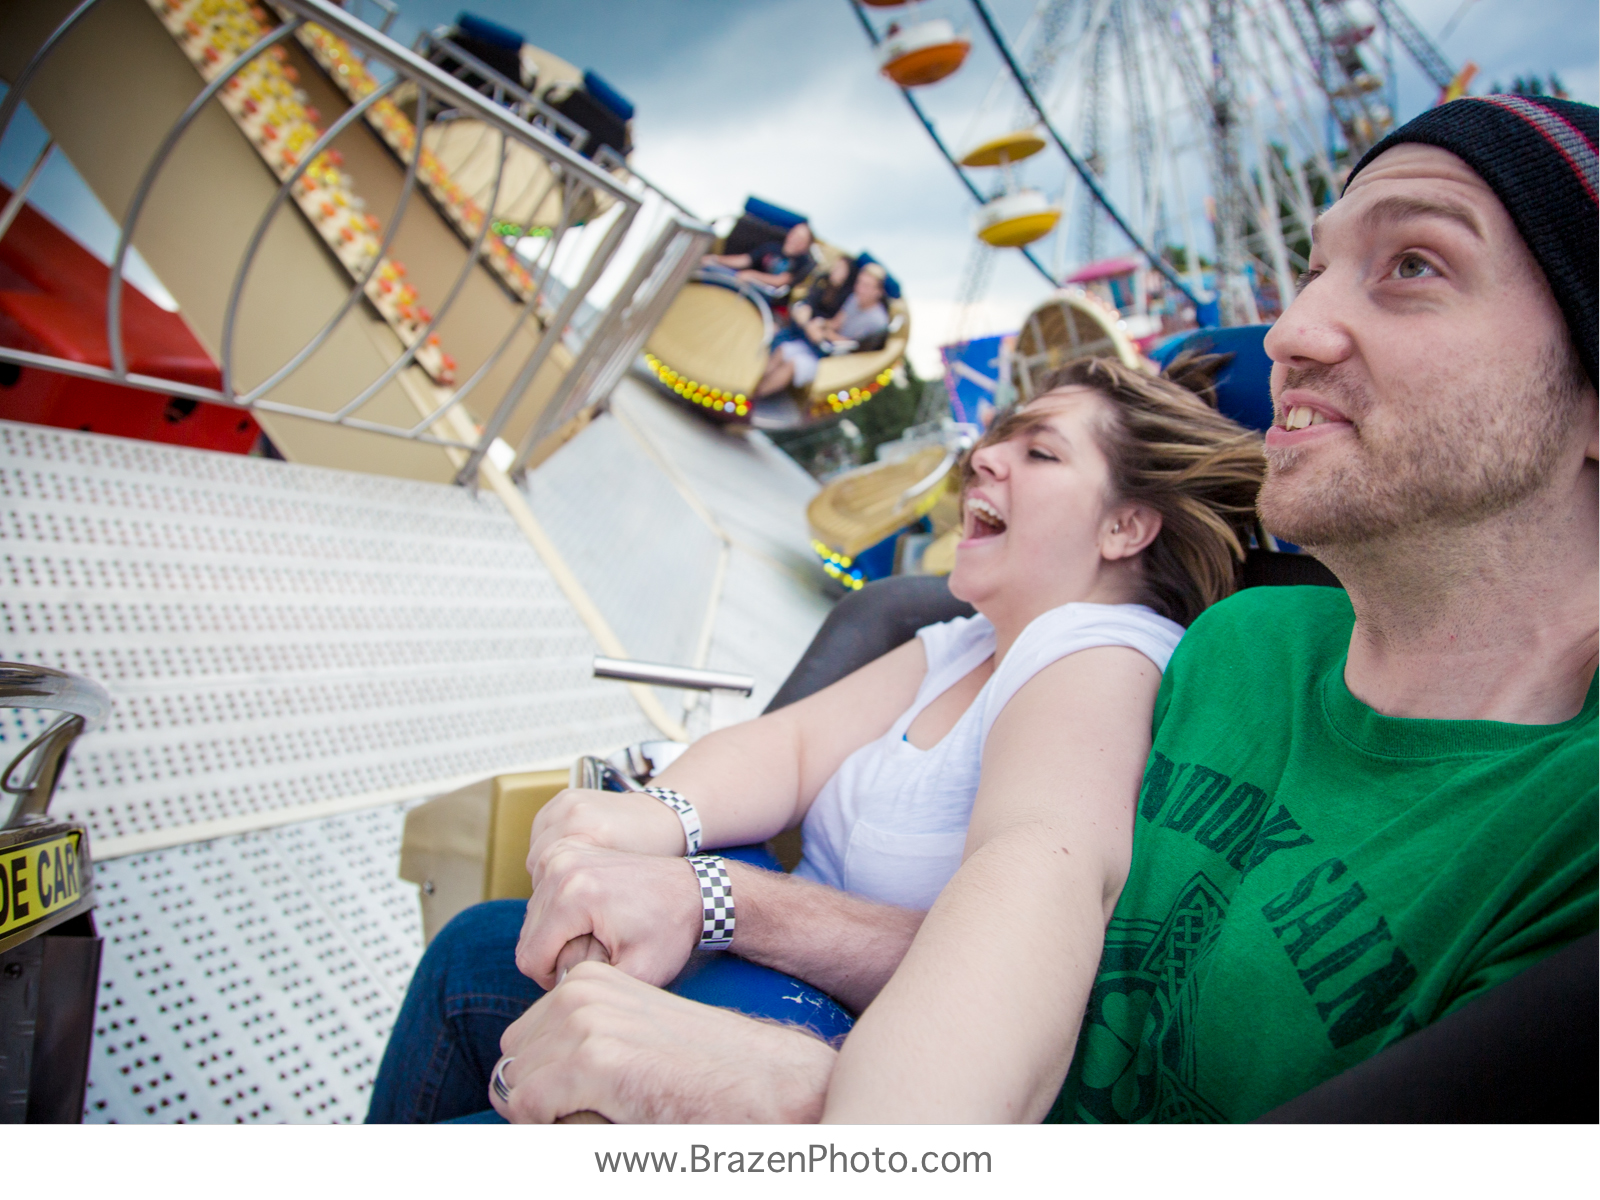 Florida State Fair-Orlando-Brazen Photo-42.jpg